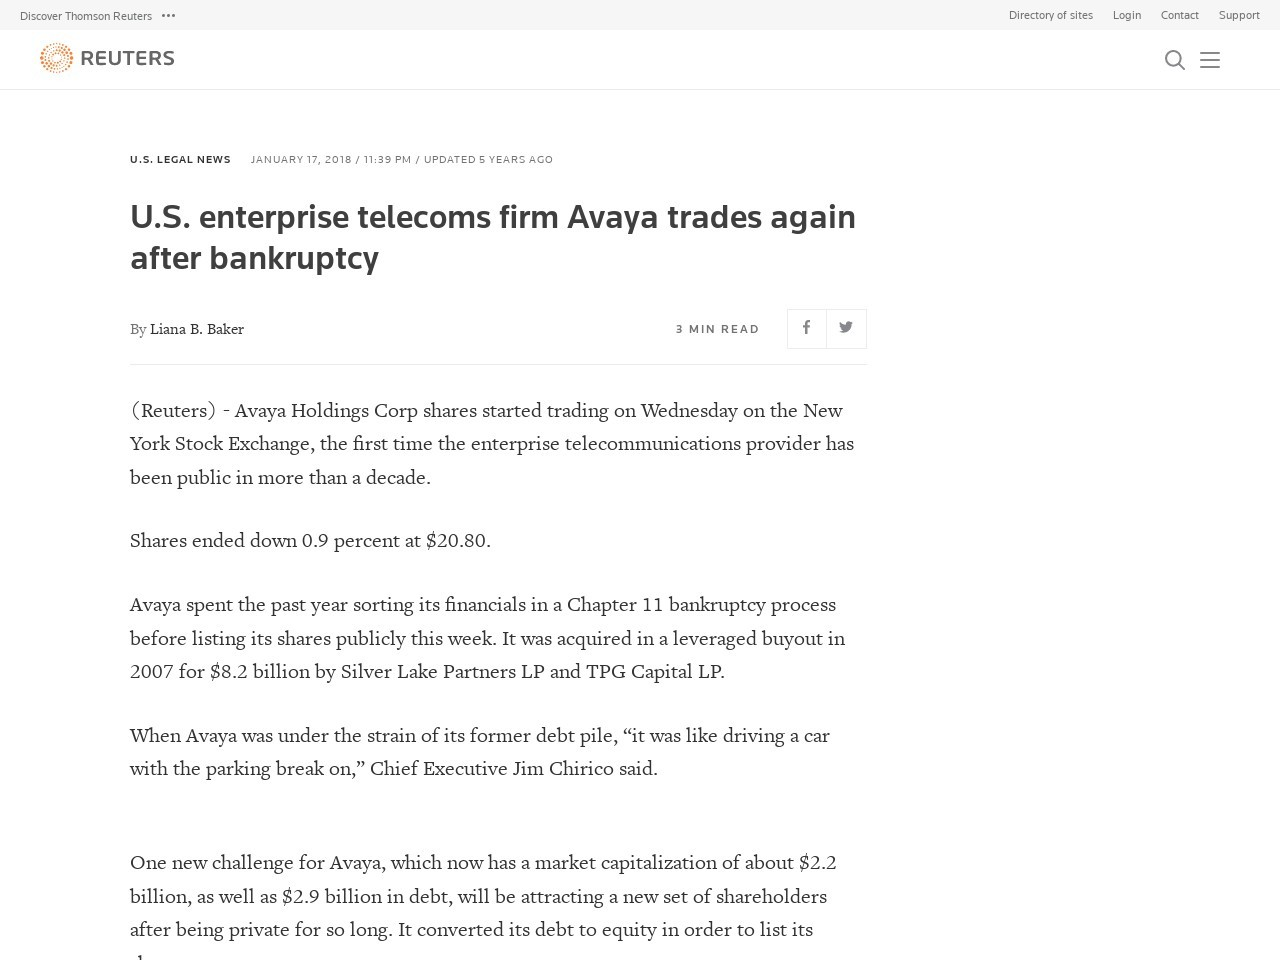 U.S. enterprise telecoms firm Avaya trades again after bankruptcy